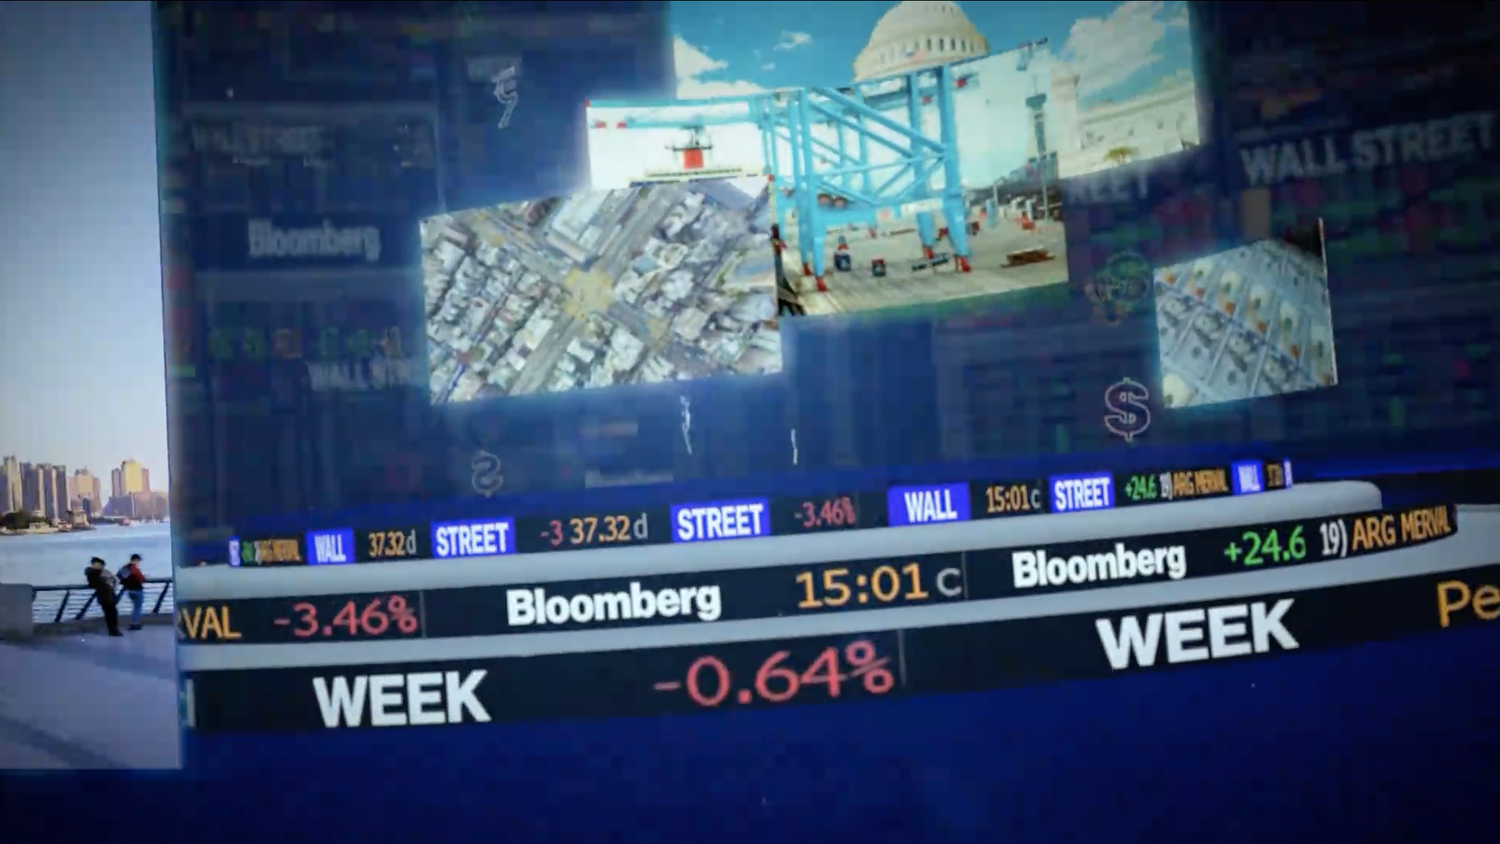 ncs_Bloomberg-Wall-Street-Week-Graphics_0008